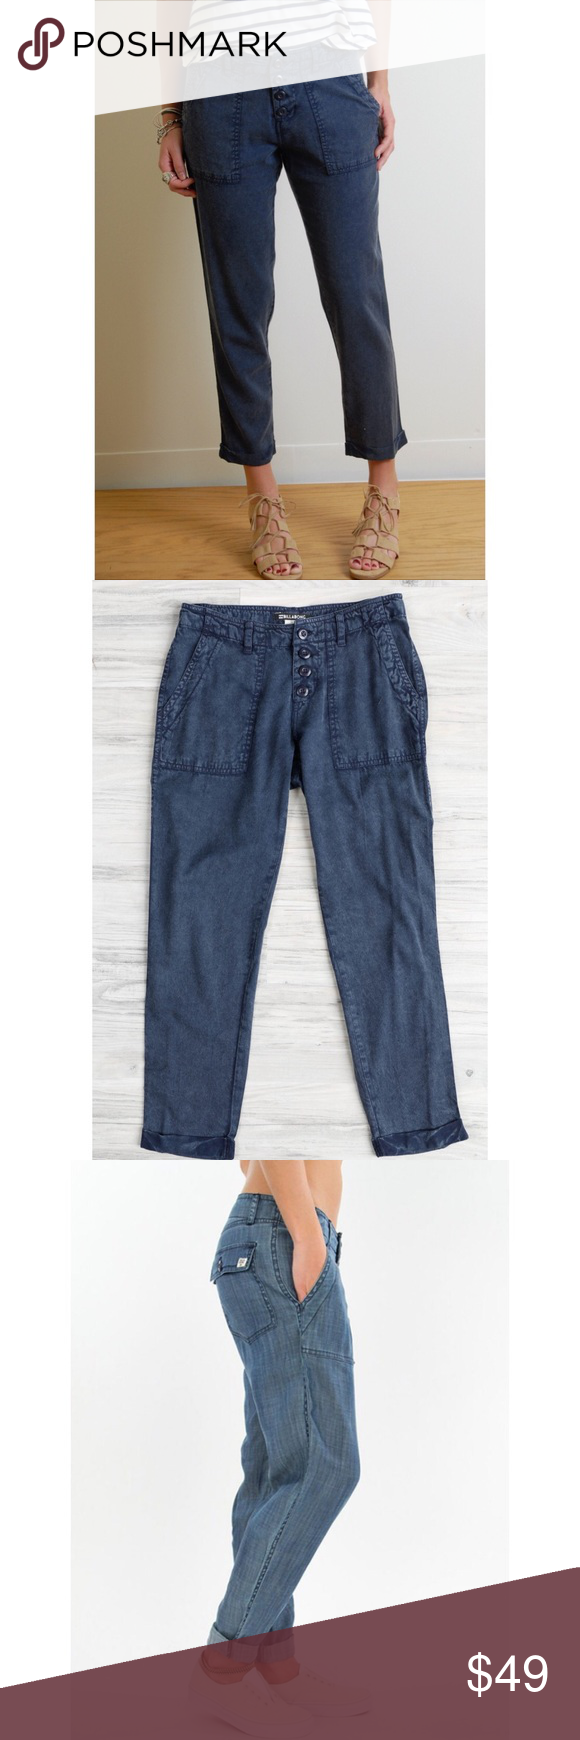 """✨FLASH SALE✨ Billabong Kick Back Pants ✨NWT✨ Brand: Billabong, Size: 25, Color: Deep Sea Blue, relaxed fit, purposely faded """"salt-washed"""" to give a beach vibe, lightweight and soft! ***The last photo is NOT the color of the item, it is just provided to show the style of the pant - the pants I am selling are DARK blue*** Billabong Pants"""